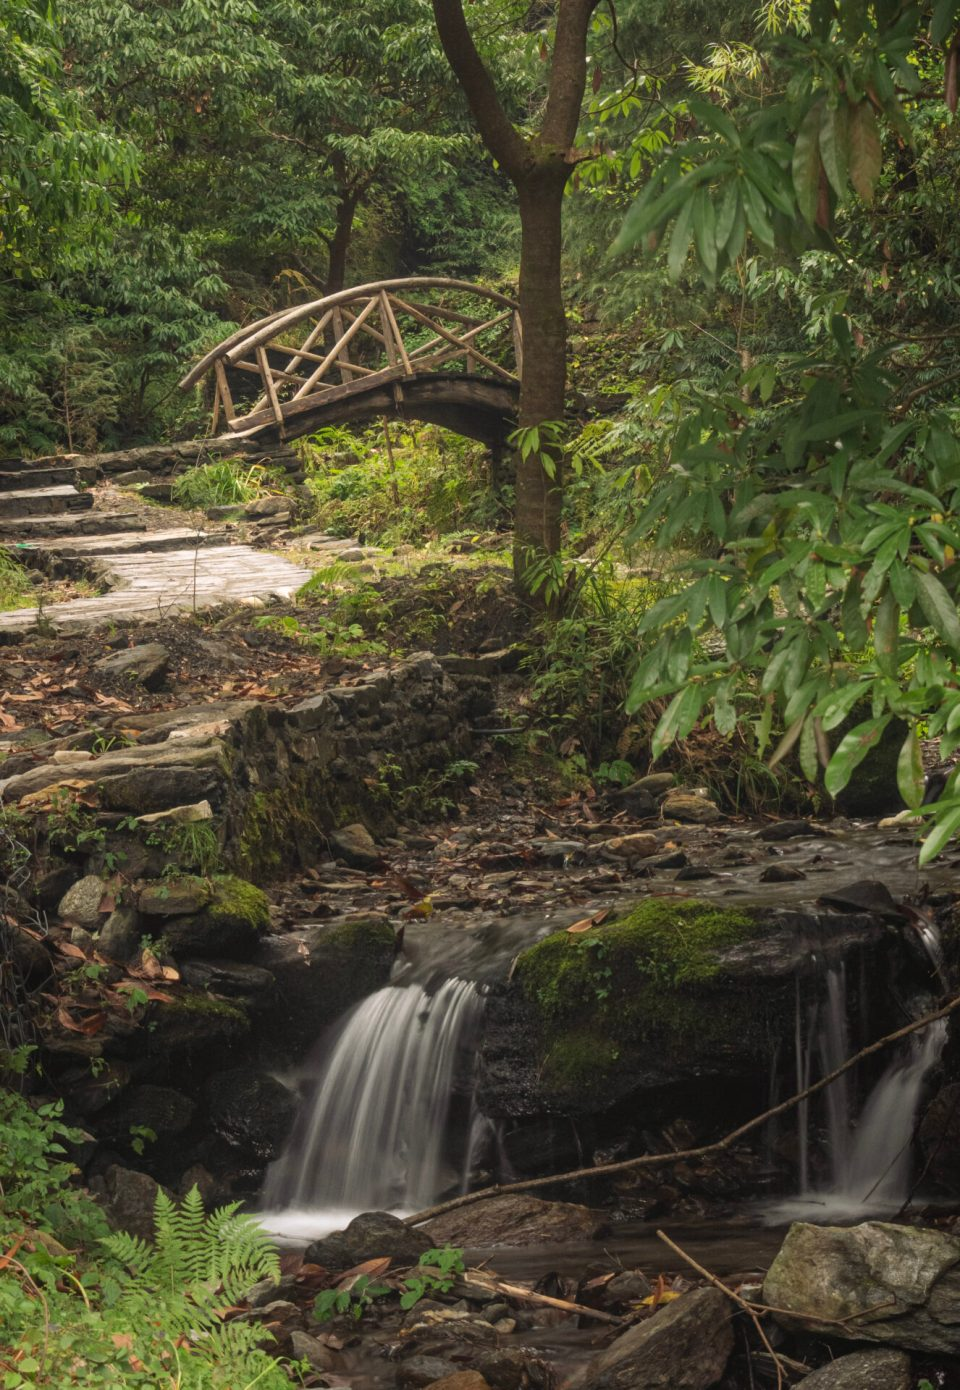 Entry way to the waterfall passing the dense forest